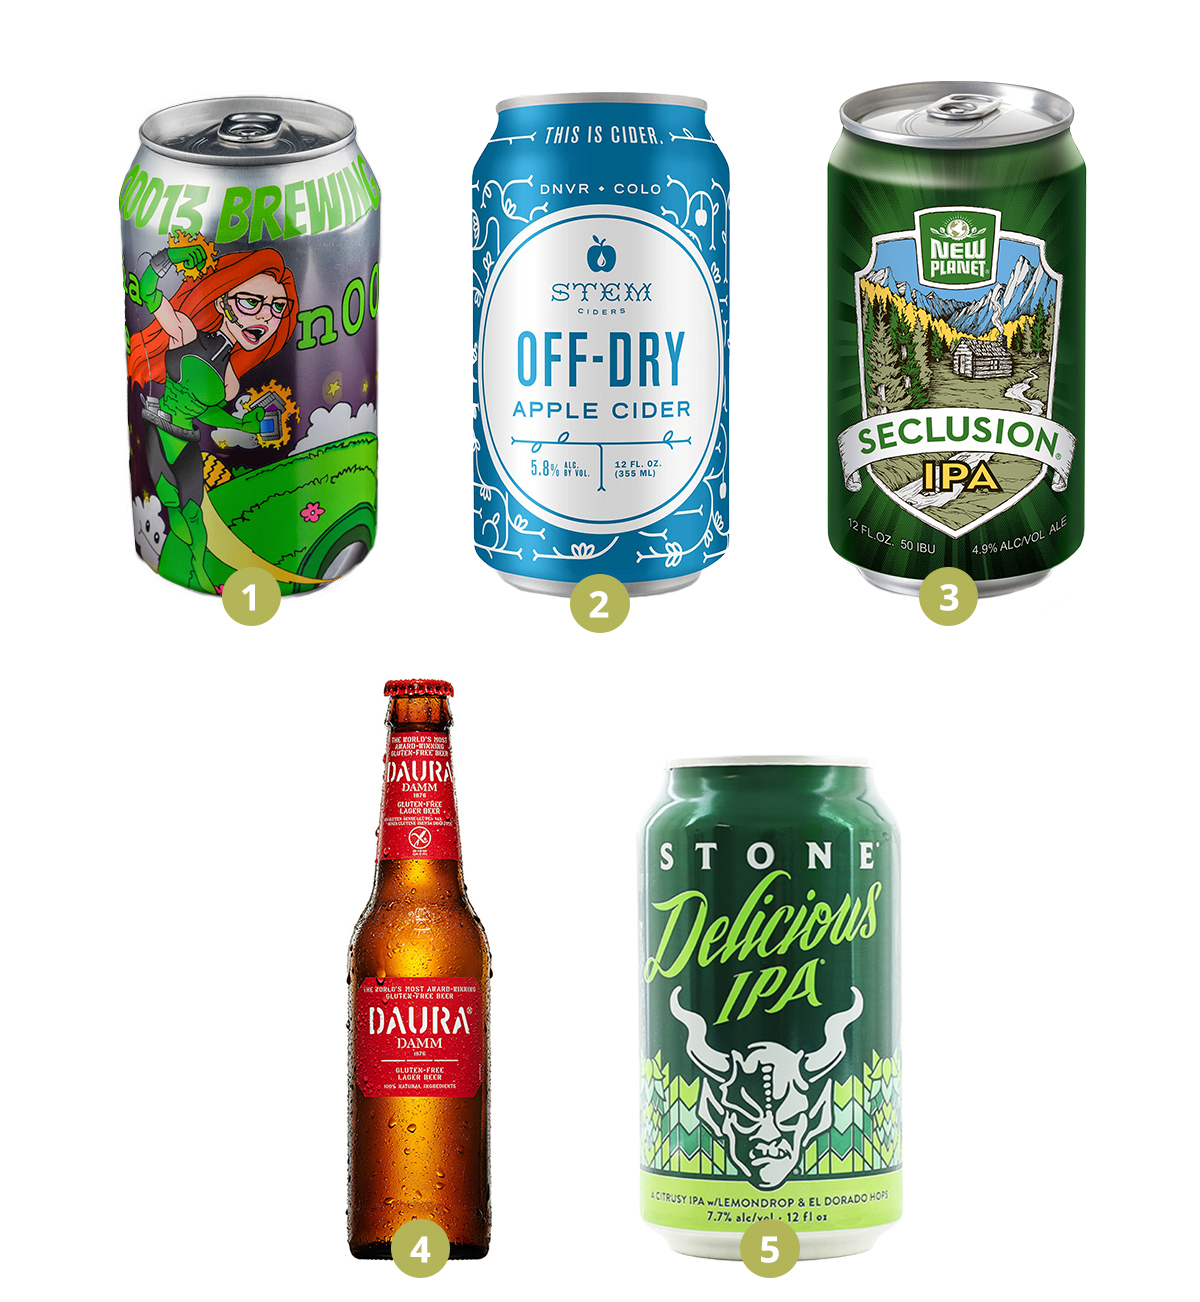 Cider and Gluten-Free Beer in your market